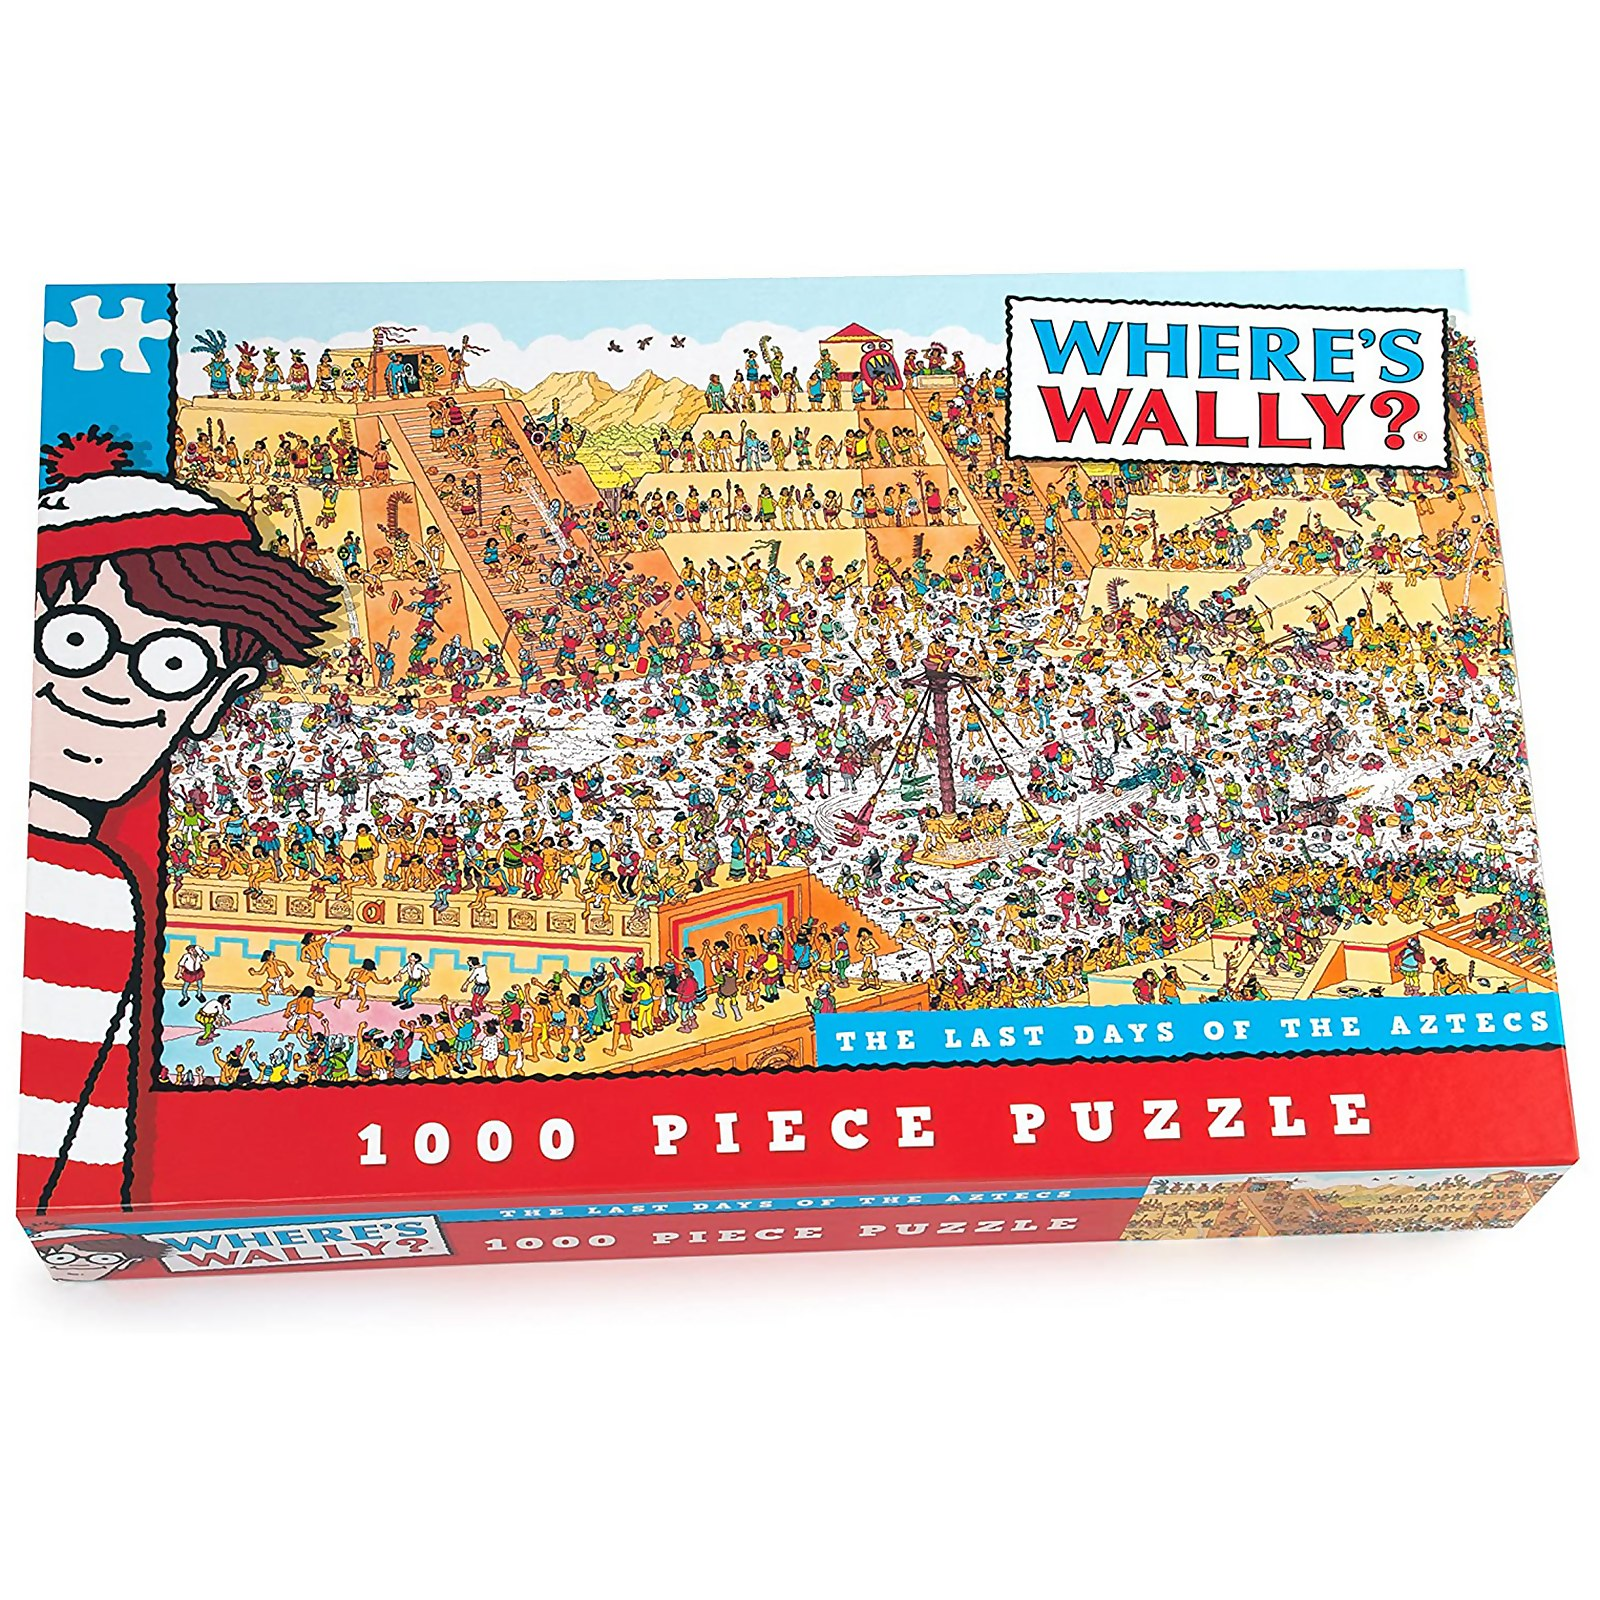 Image of Where's Wally The Last Days of the Aztecs Jigsaw Puzzle (1000 Pieces)